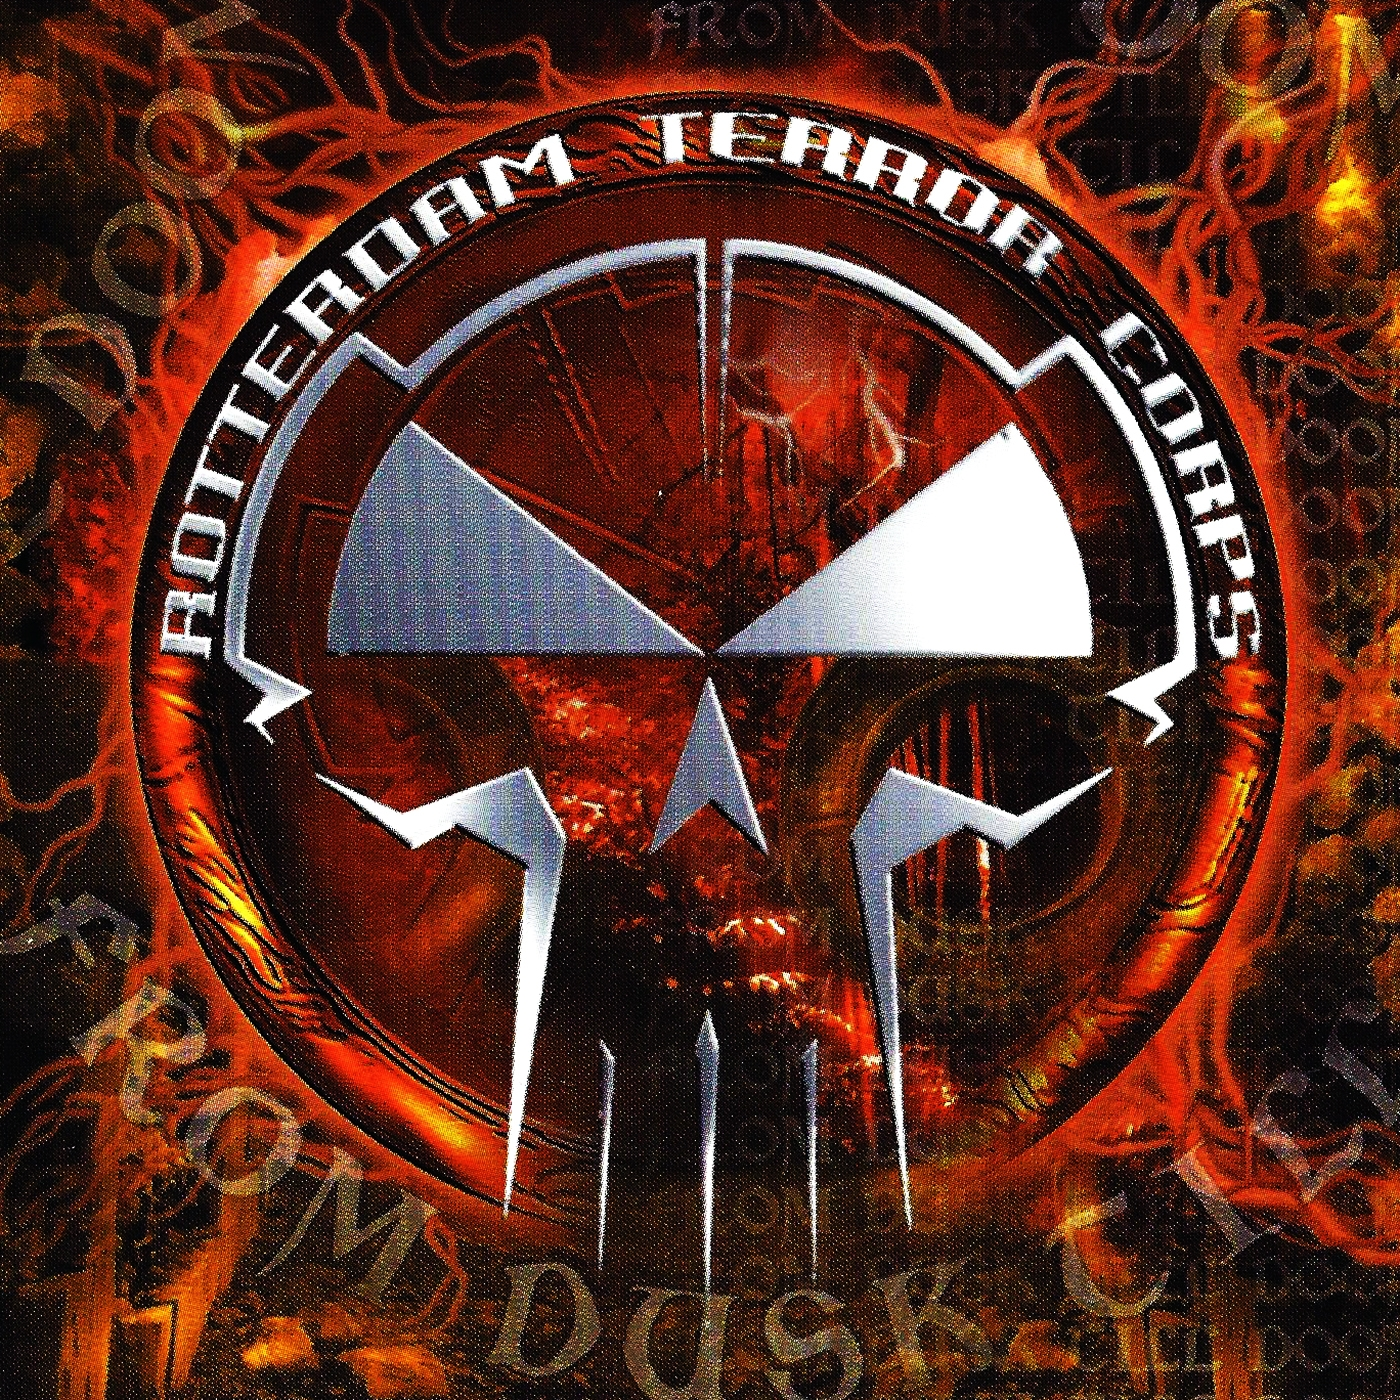 Rotterdam Terror Corps - Our Vision (Remastered) - MP3 and